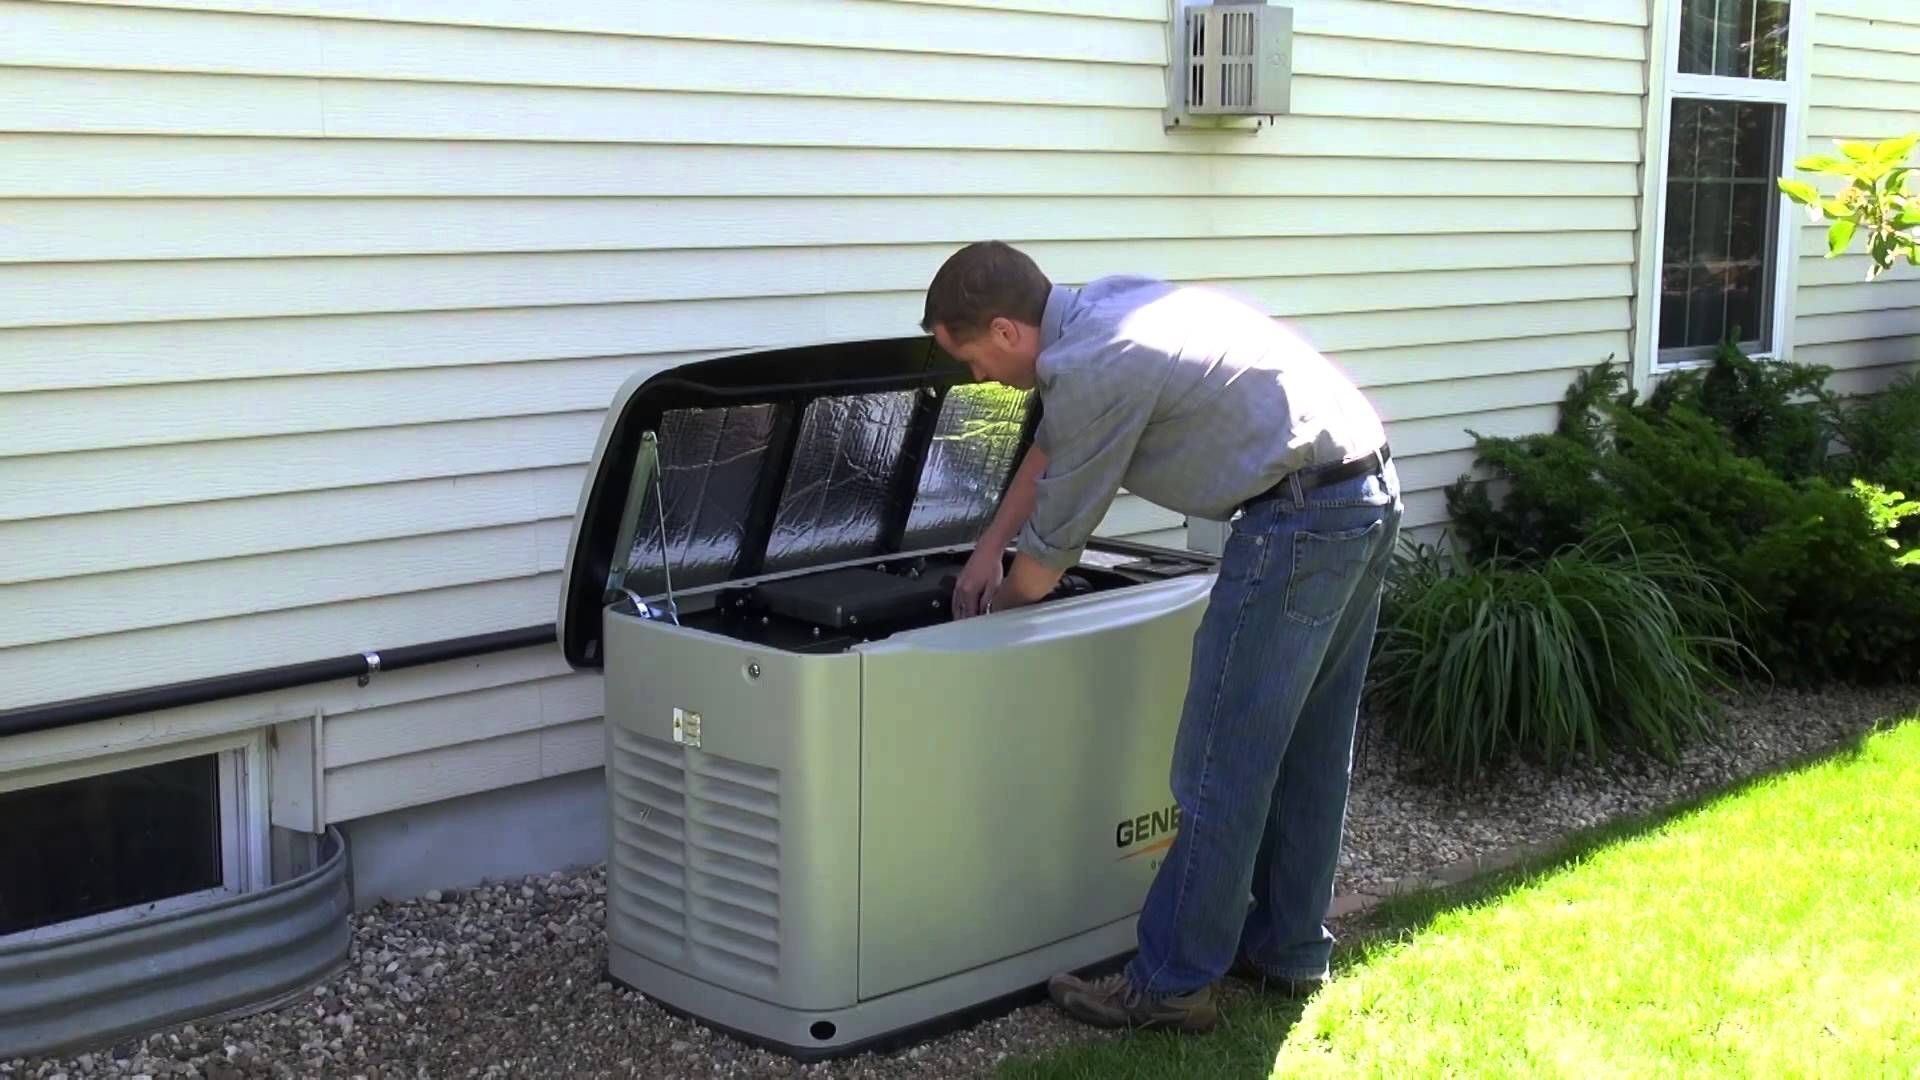 Introducing the Generac 22 kW Guardian Generator! View the